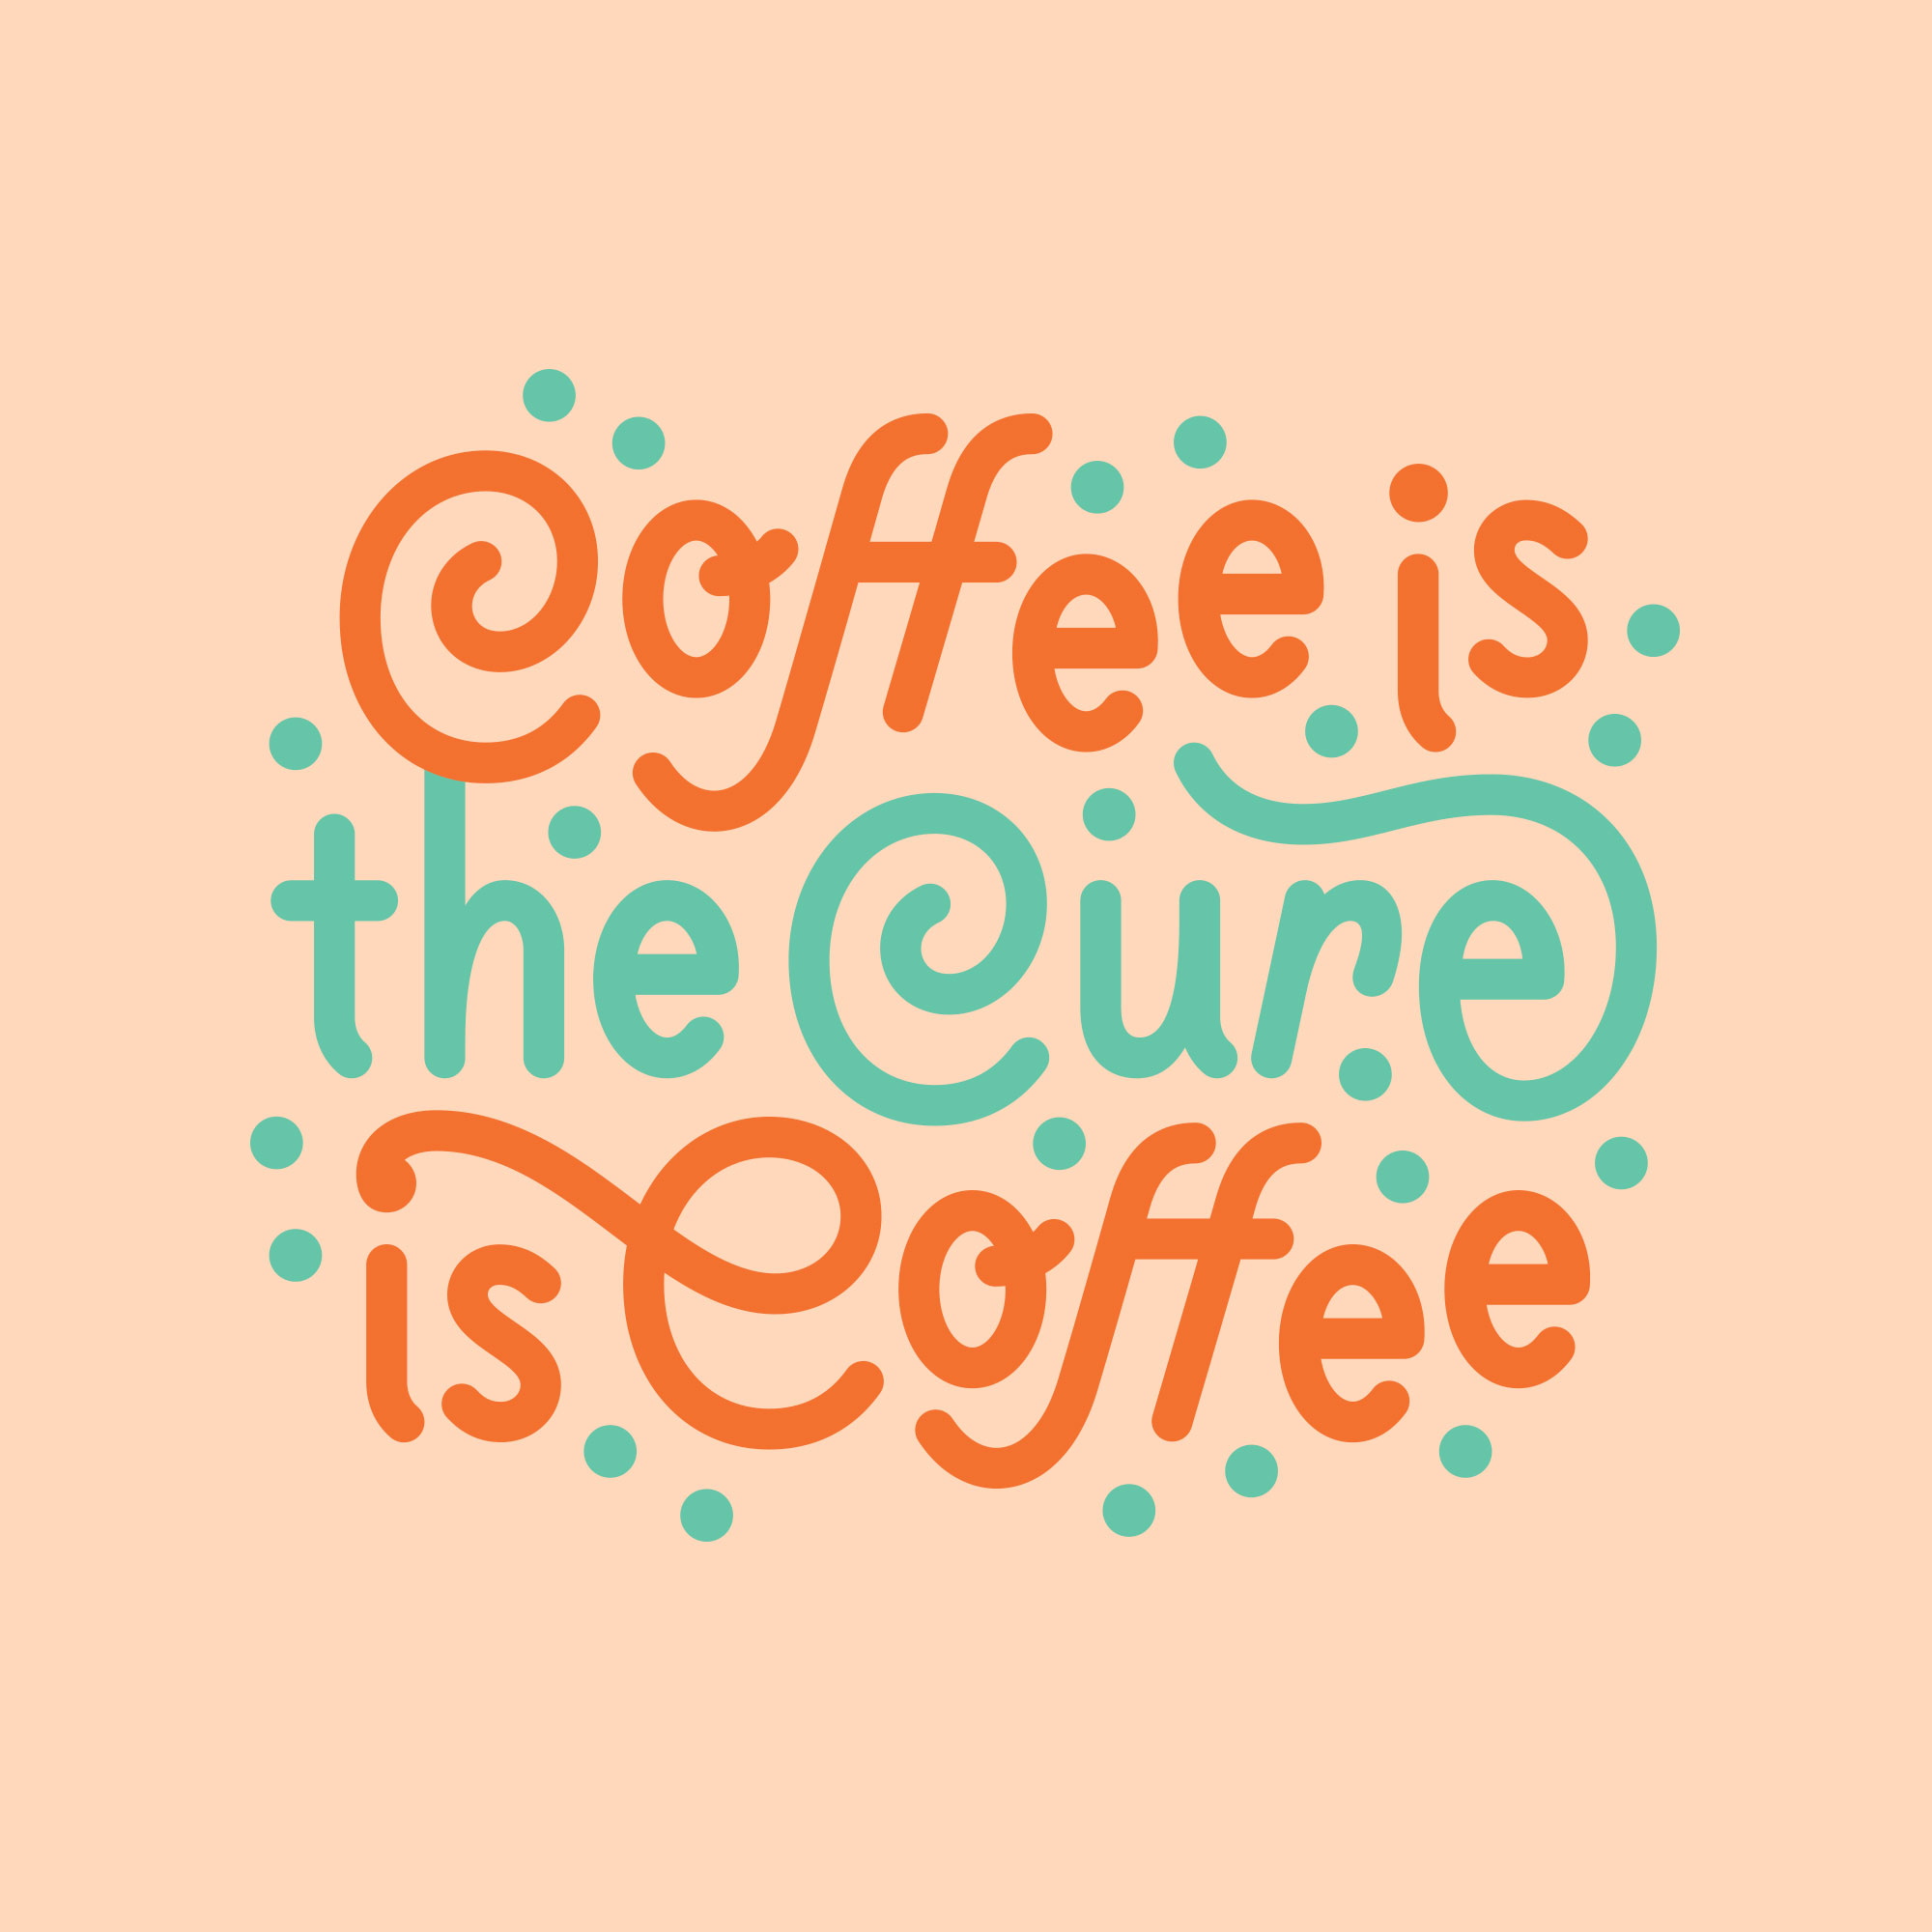 Lettering written in orange and aqua that says Coffee Is the Cure Is Coffee, surrounded by aqua dots. The lettering is a bit curly, and written in sentence case.